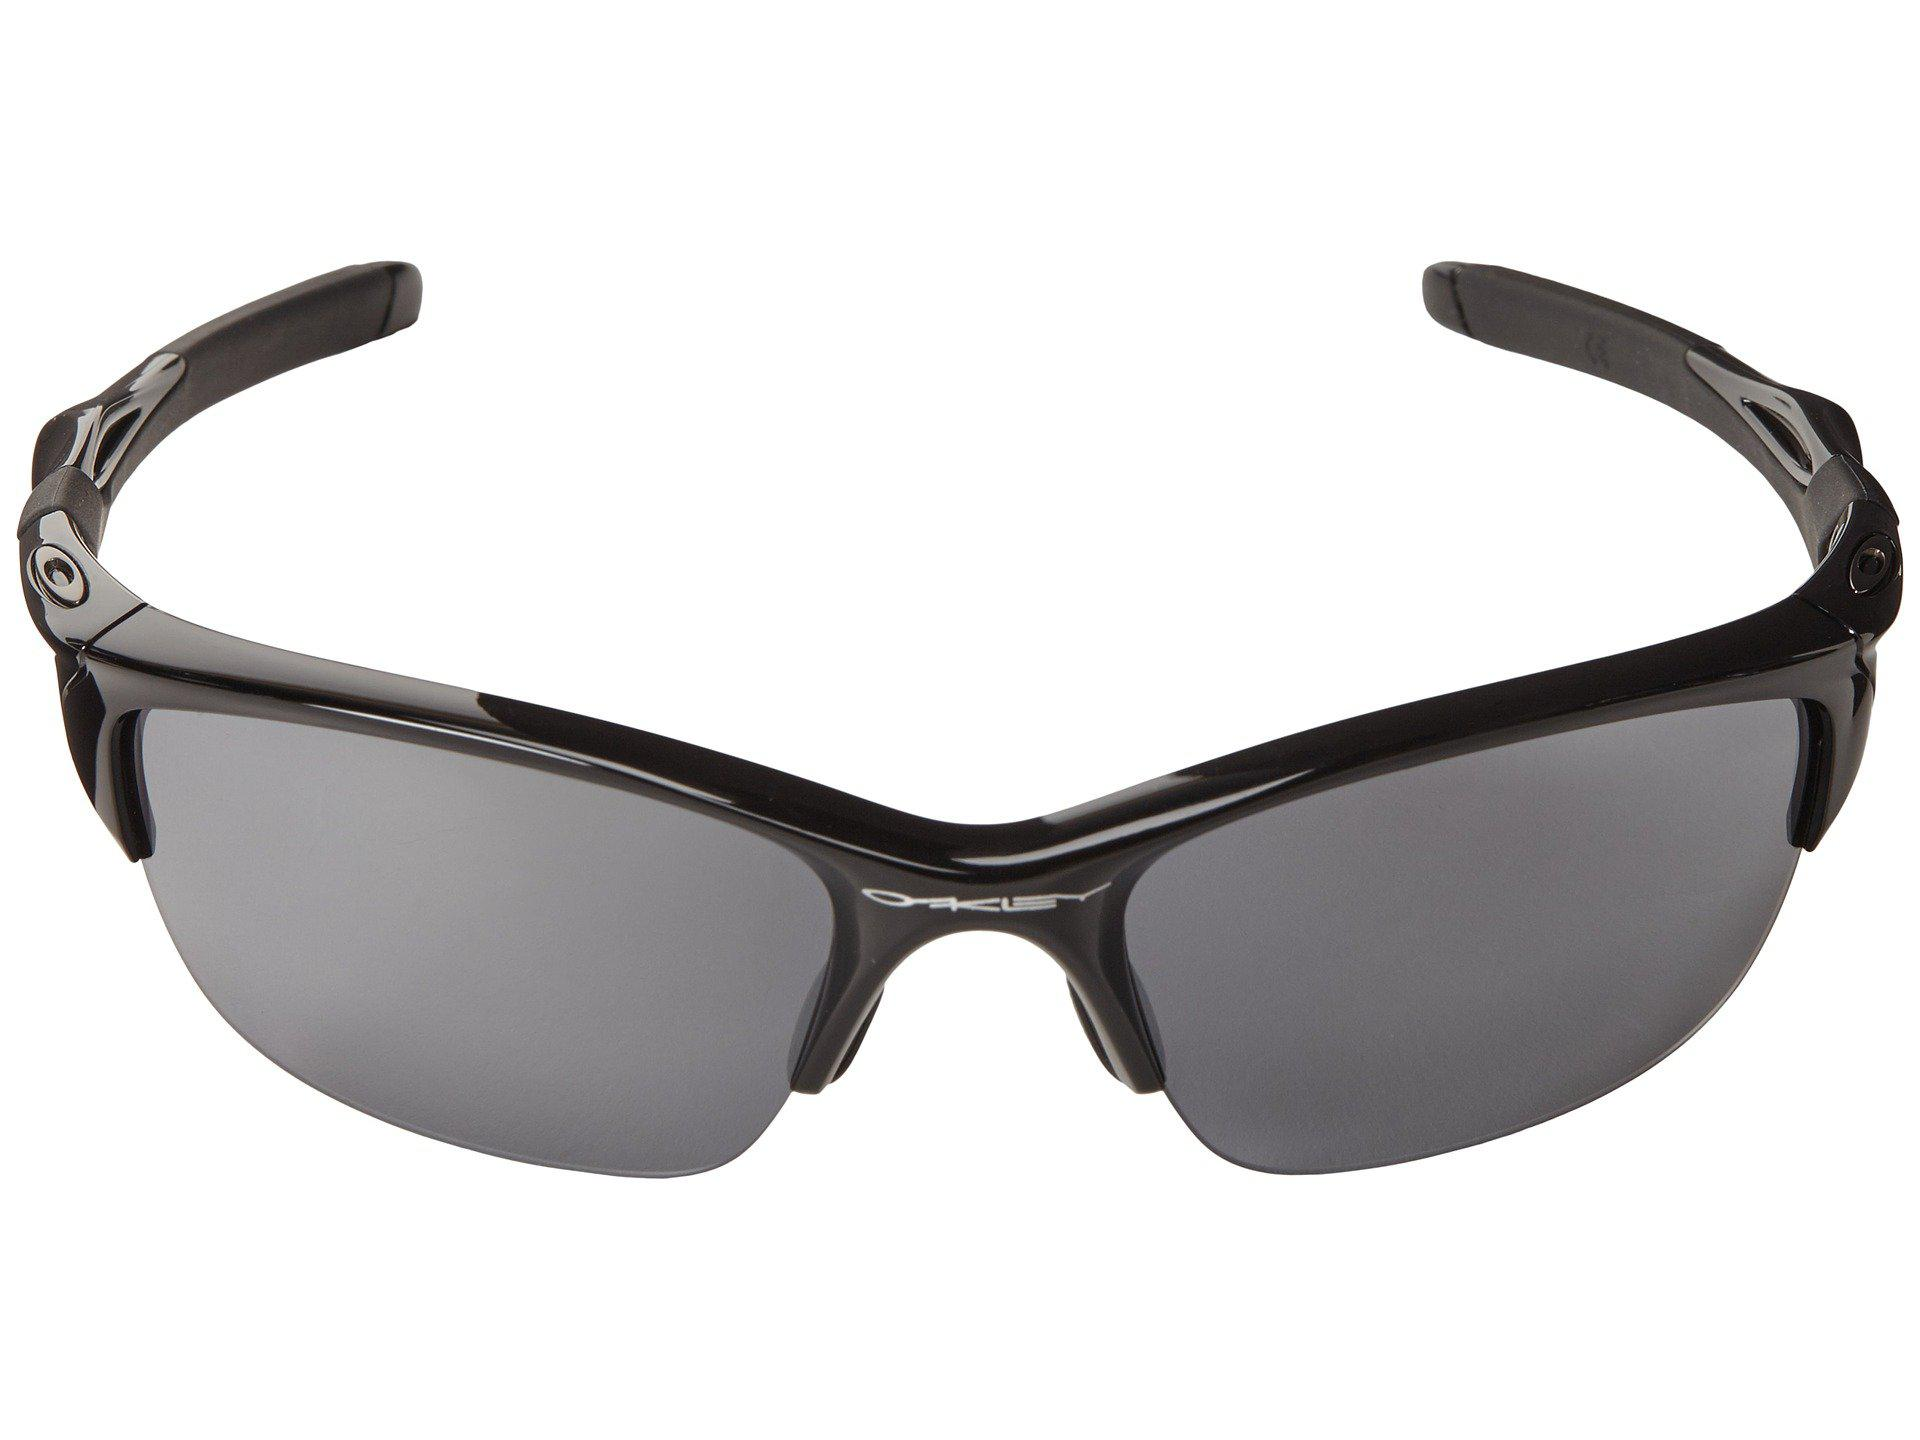 8d602e0a03 Oakley - Half Jacket 2.0 (polished Black prizm Golf) Sport Sunglasses for  Men. View fullscreen